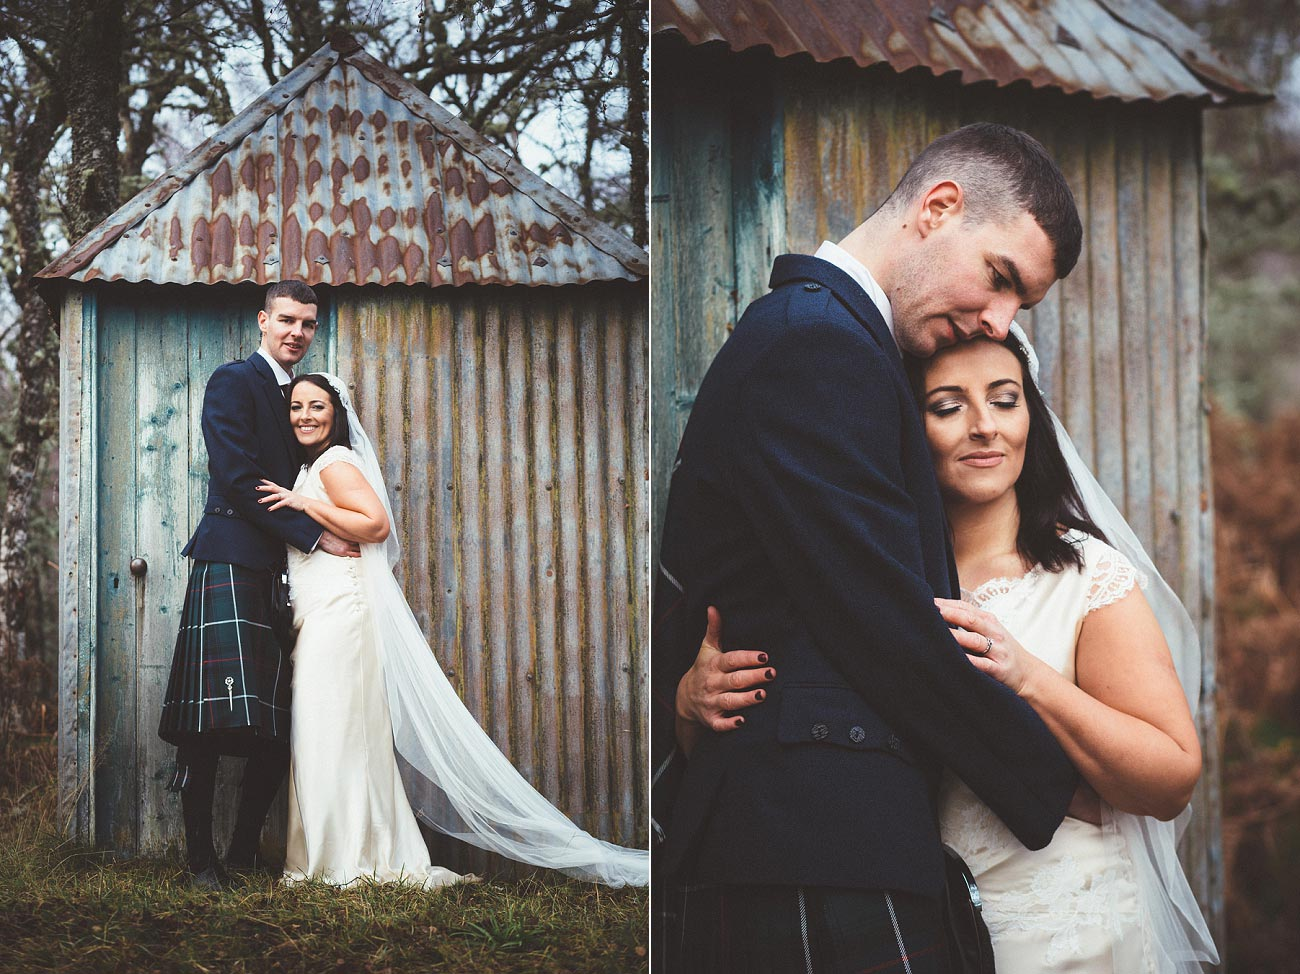 small church wedding Invernessshire scotland scottish highlands Croick 0050